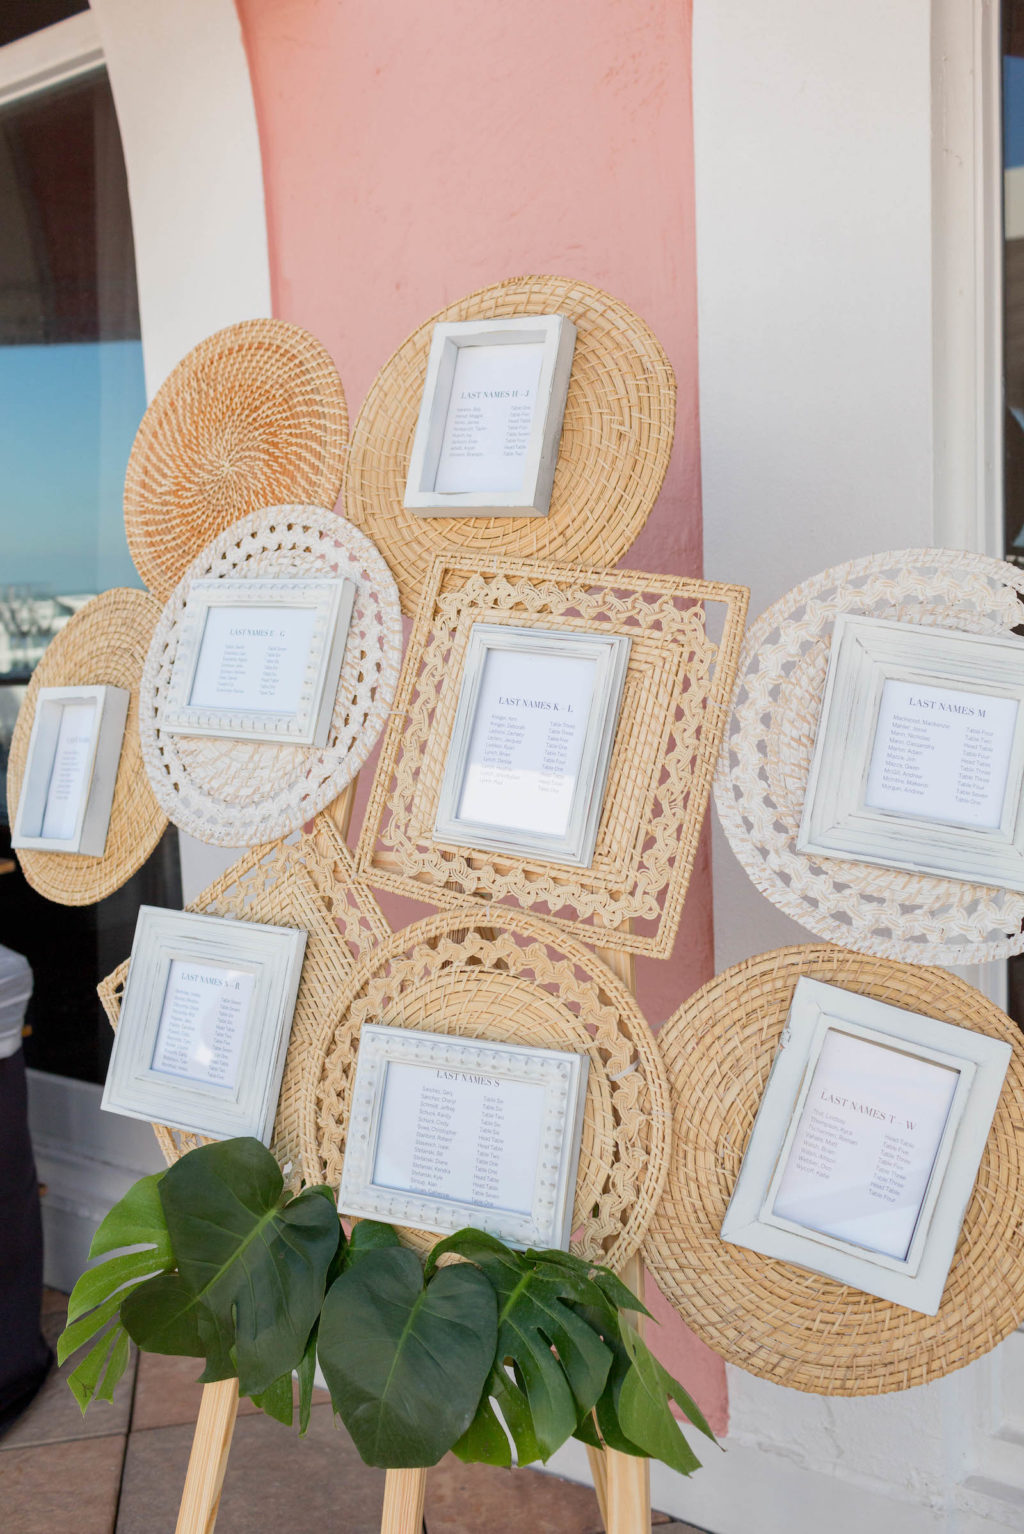 Tropical Boho Beach Wedding Seating Chart with Woven Rattan Placemats and Framed Table Card Seating Assignment